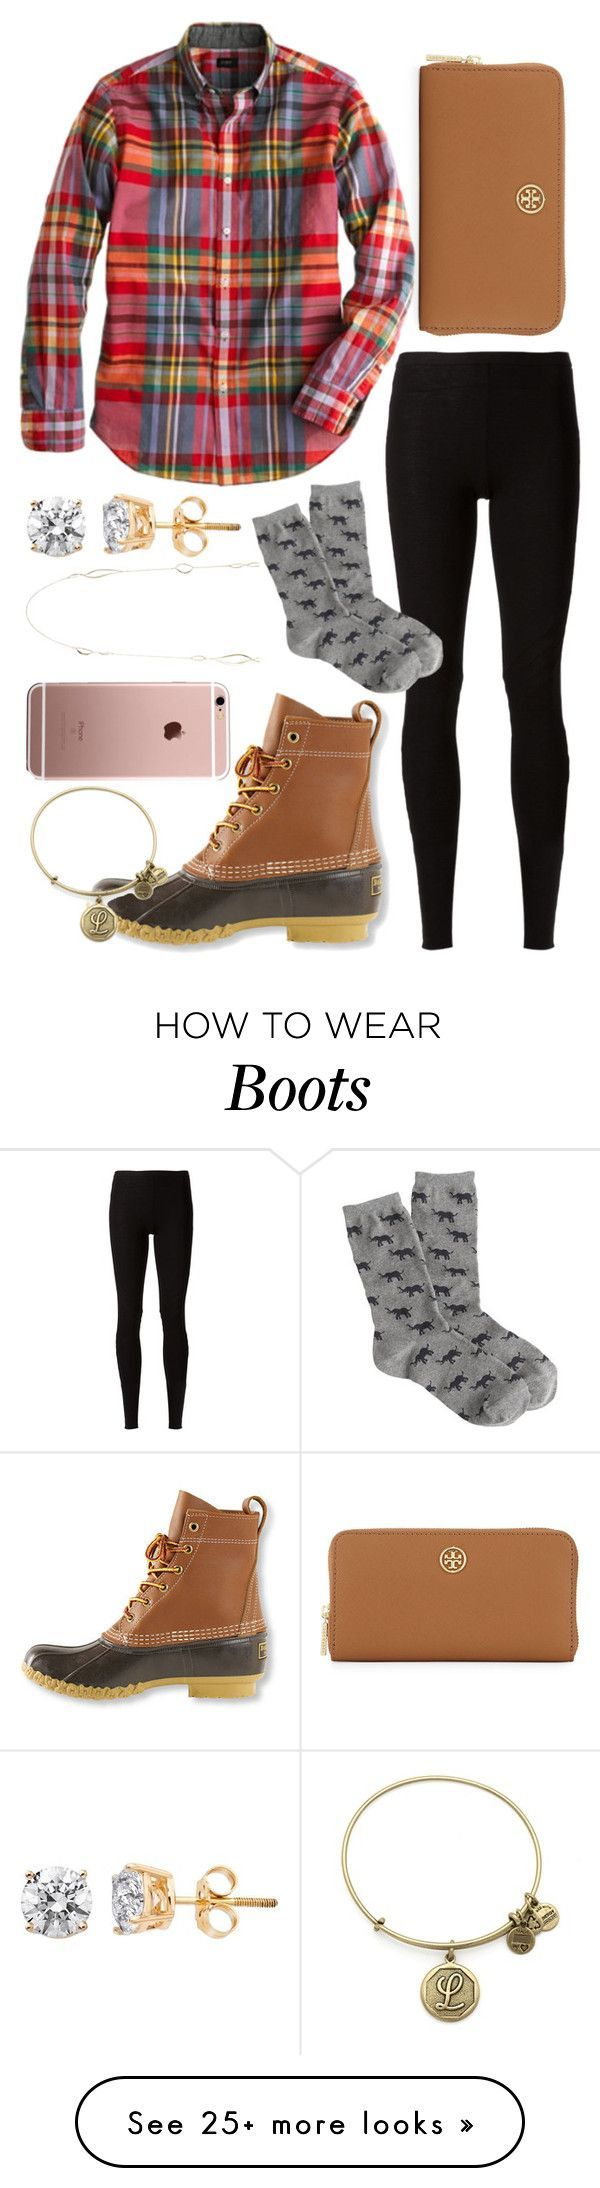 """duck boots and diamonds. Read d!"" by lindsay-mccartney on Polyvore featuring L.L.Bean, Rick Owens Lilies, J.Crew, Tory Burch, Alexis Bittar and Alex and Ani"